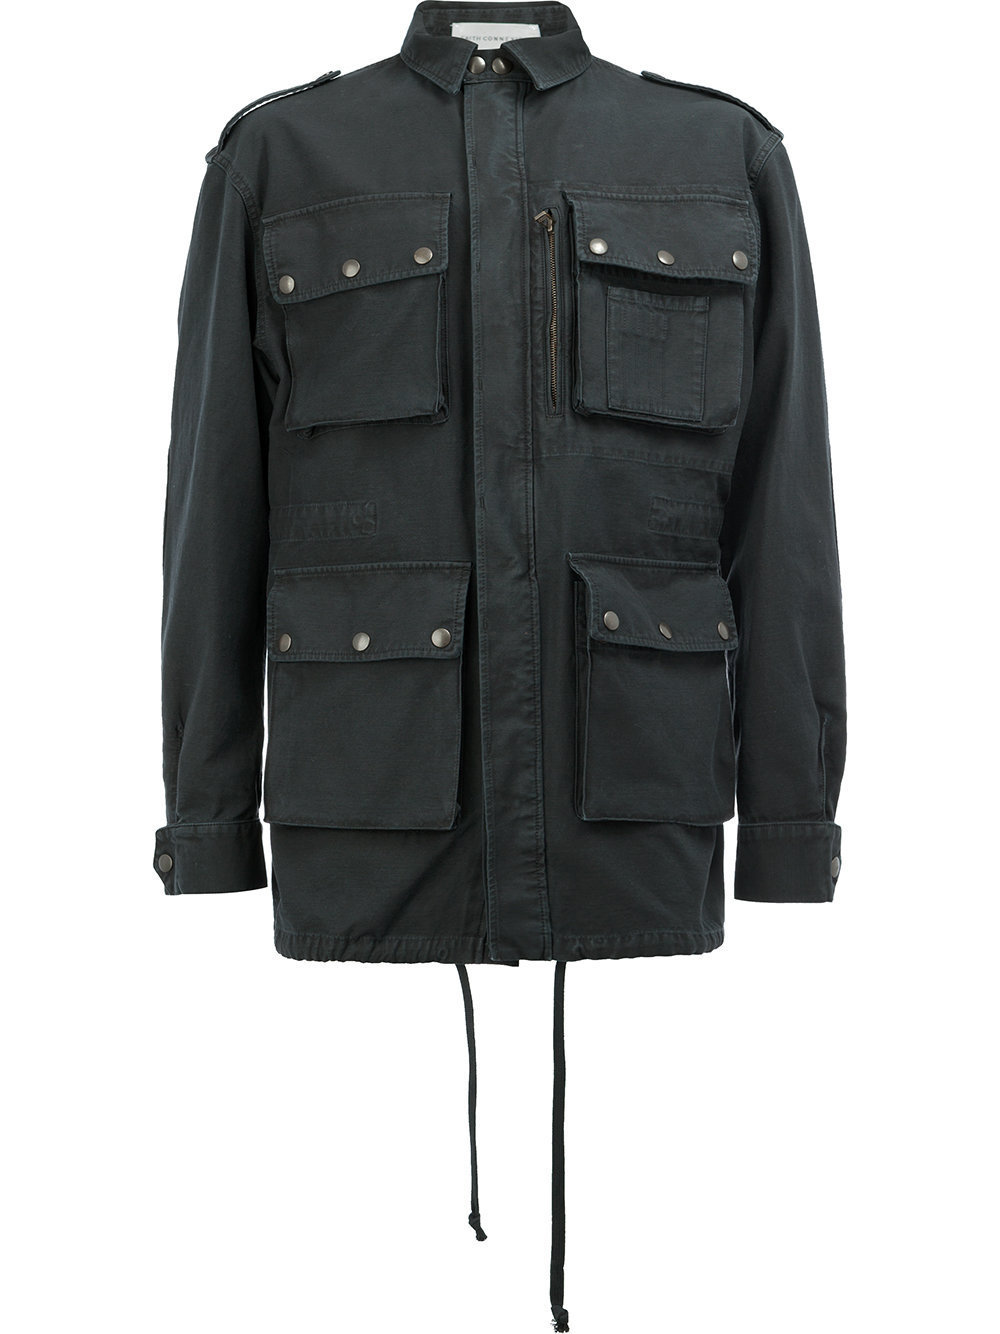 ♦FAITH CONNEXION♦cargo pockets jacket 送料関税込